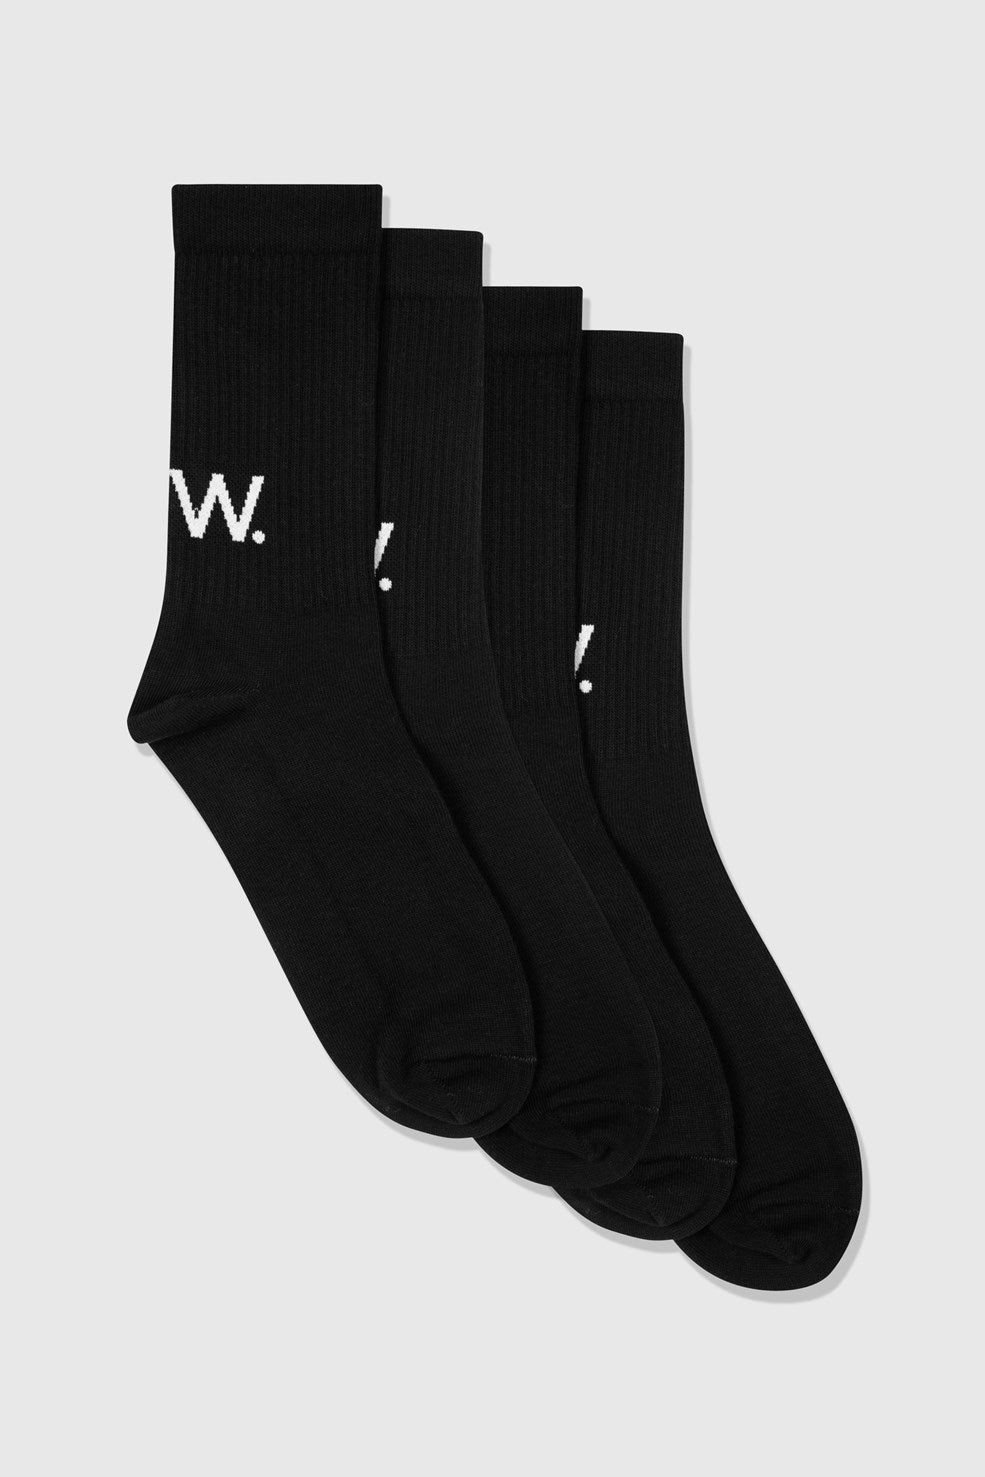 Gail 2-pack socks black